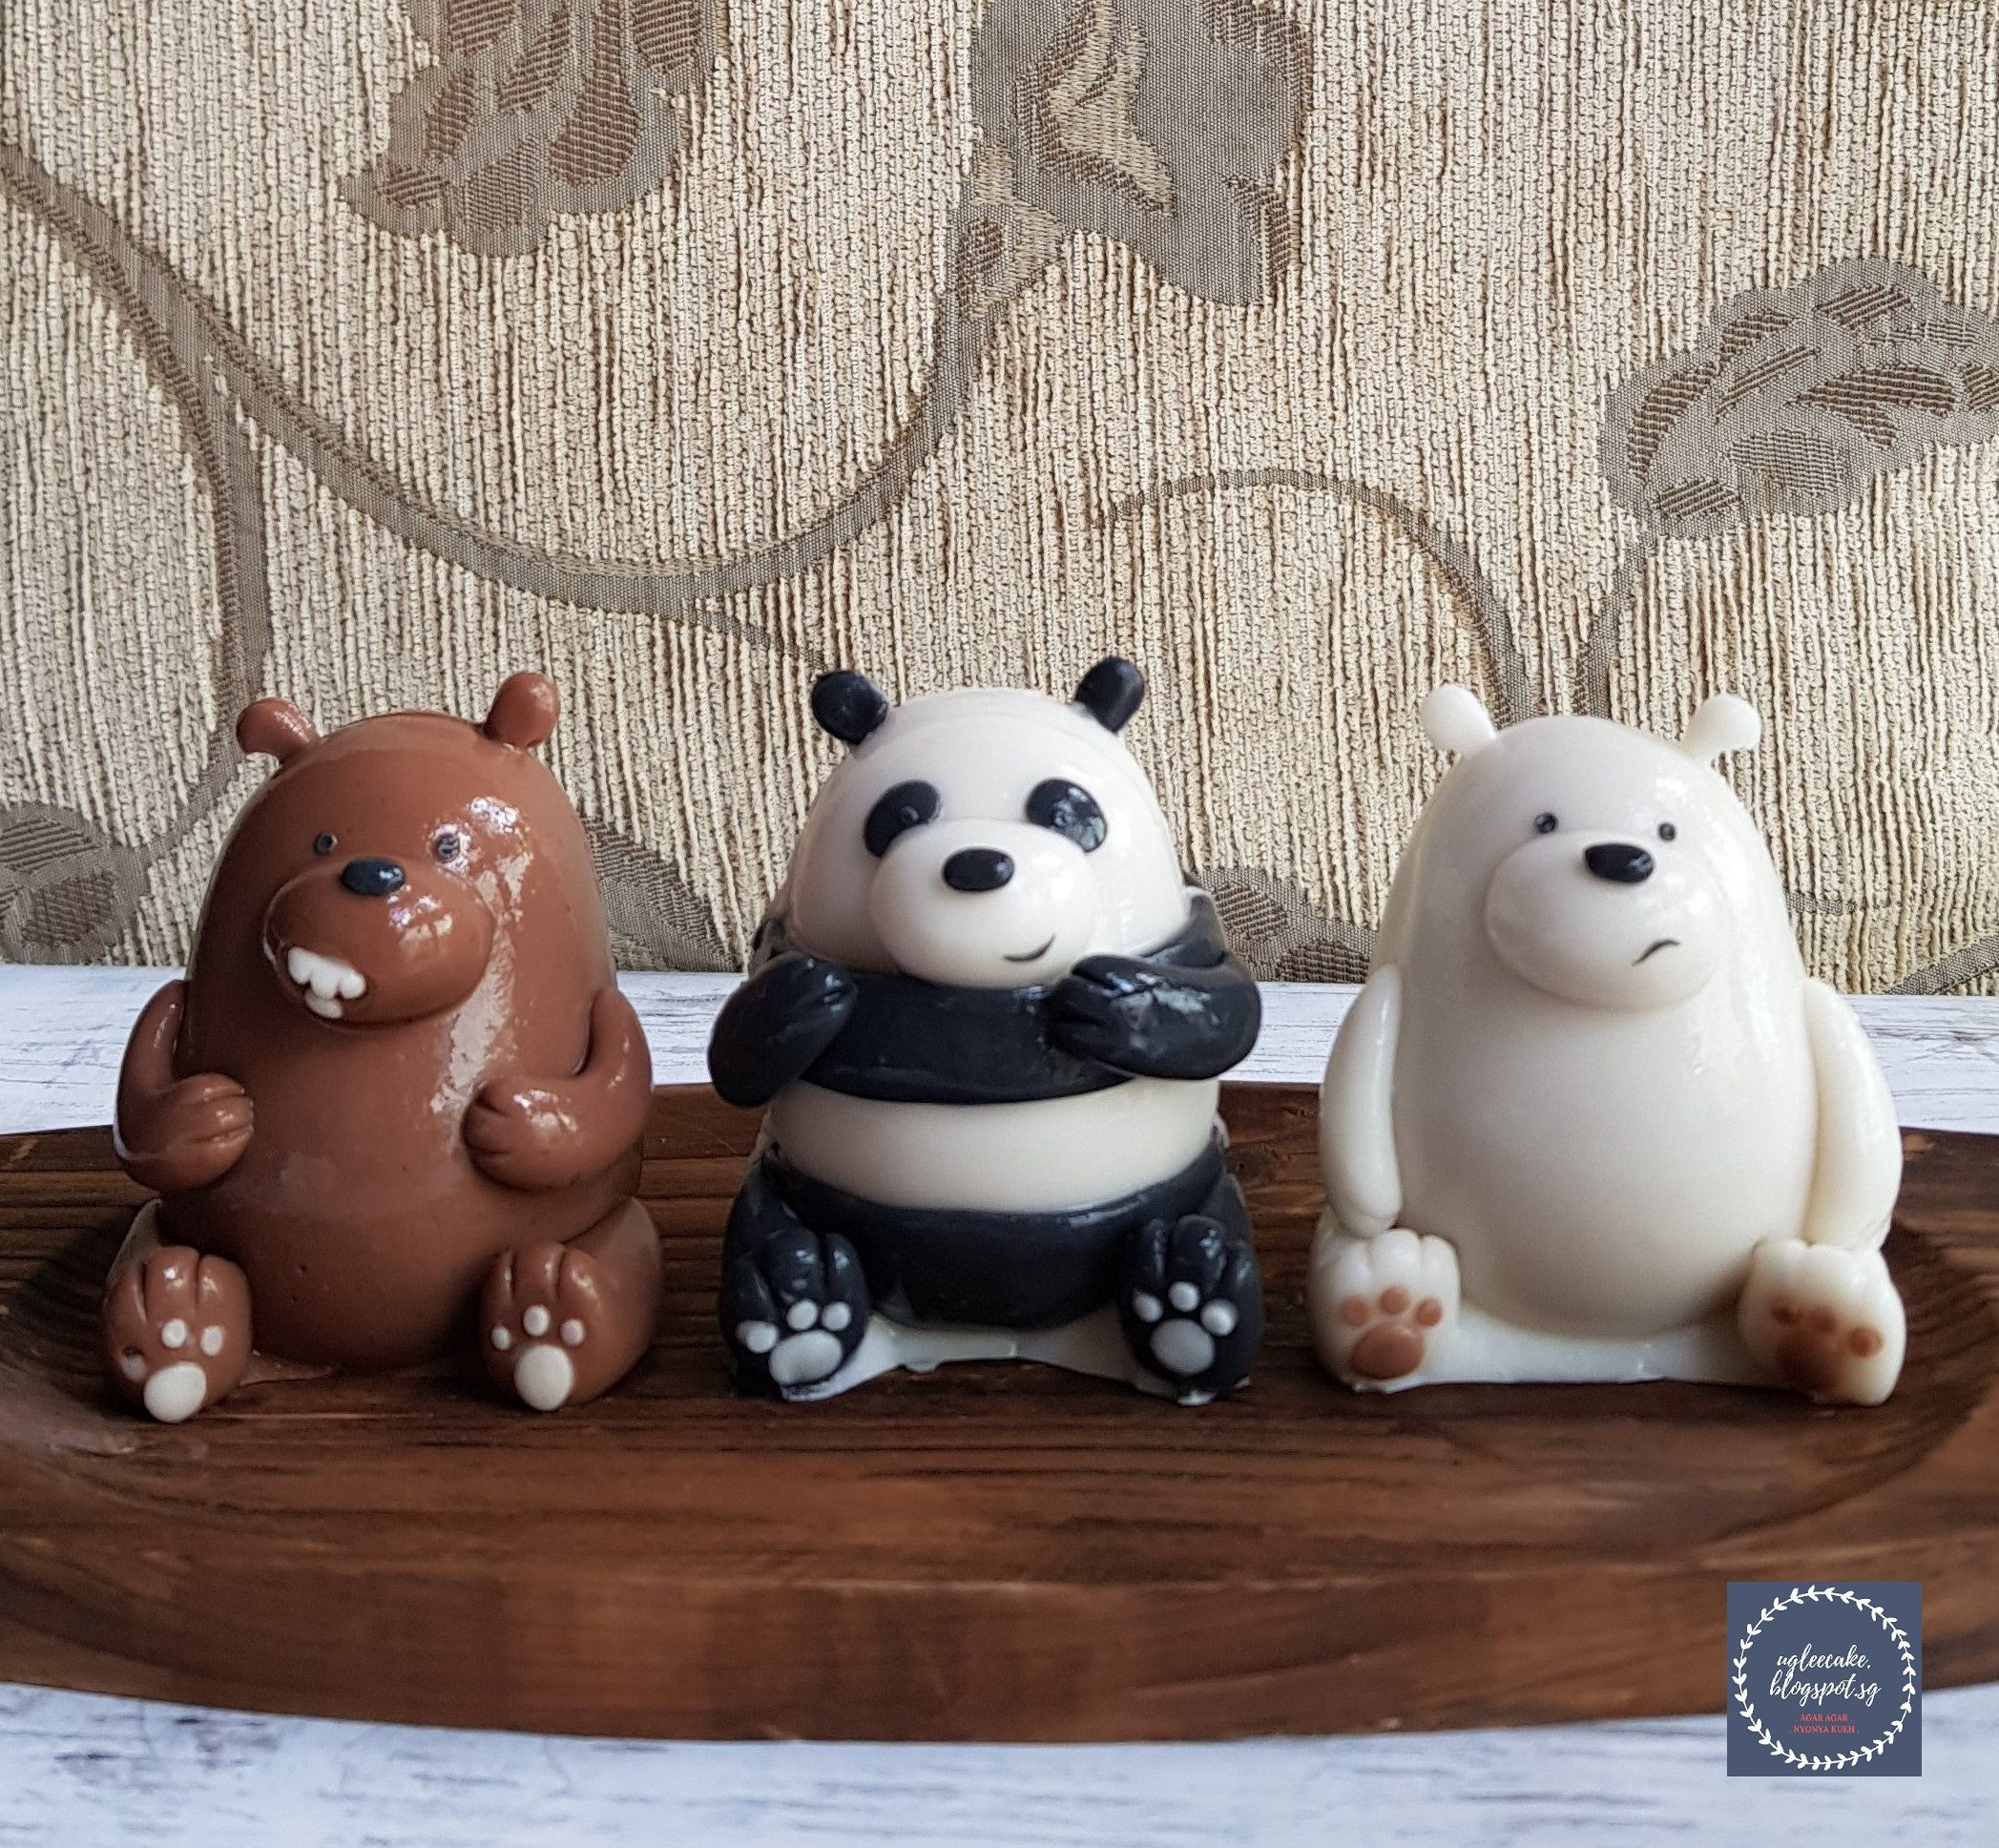 We Bare Bears Agar Agar | Bare bears, We bare bears, Bear